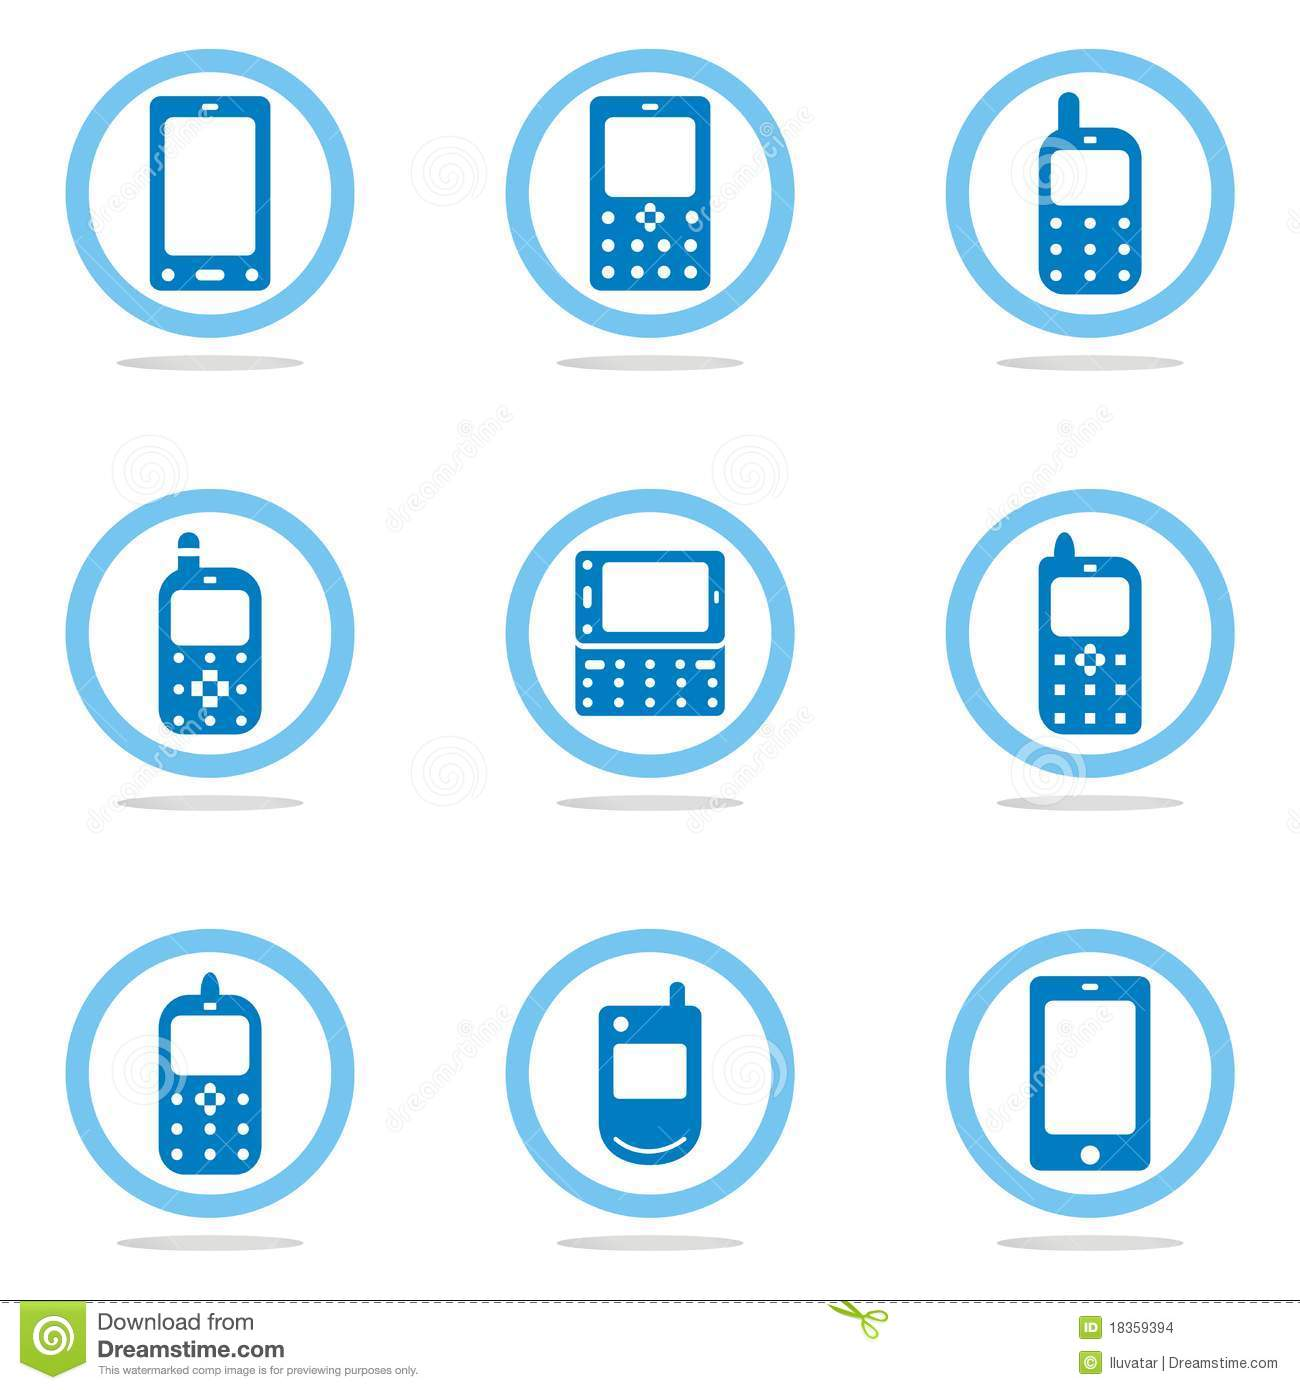 Mobile phone icon set stock vector. Image of mobile ...